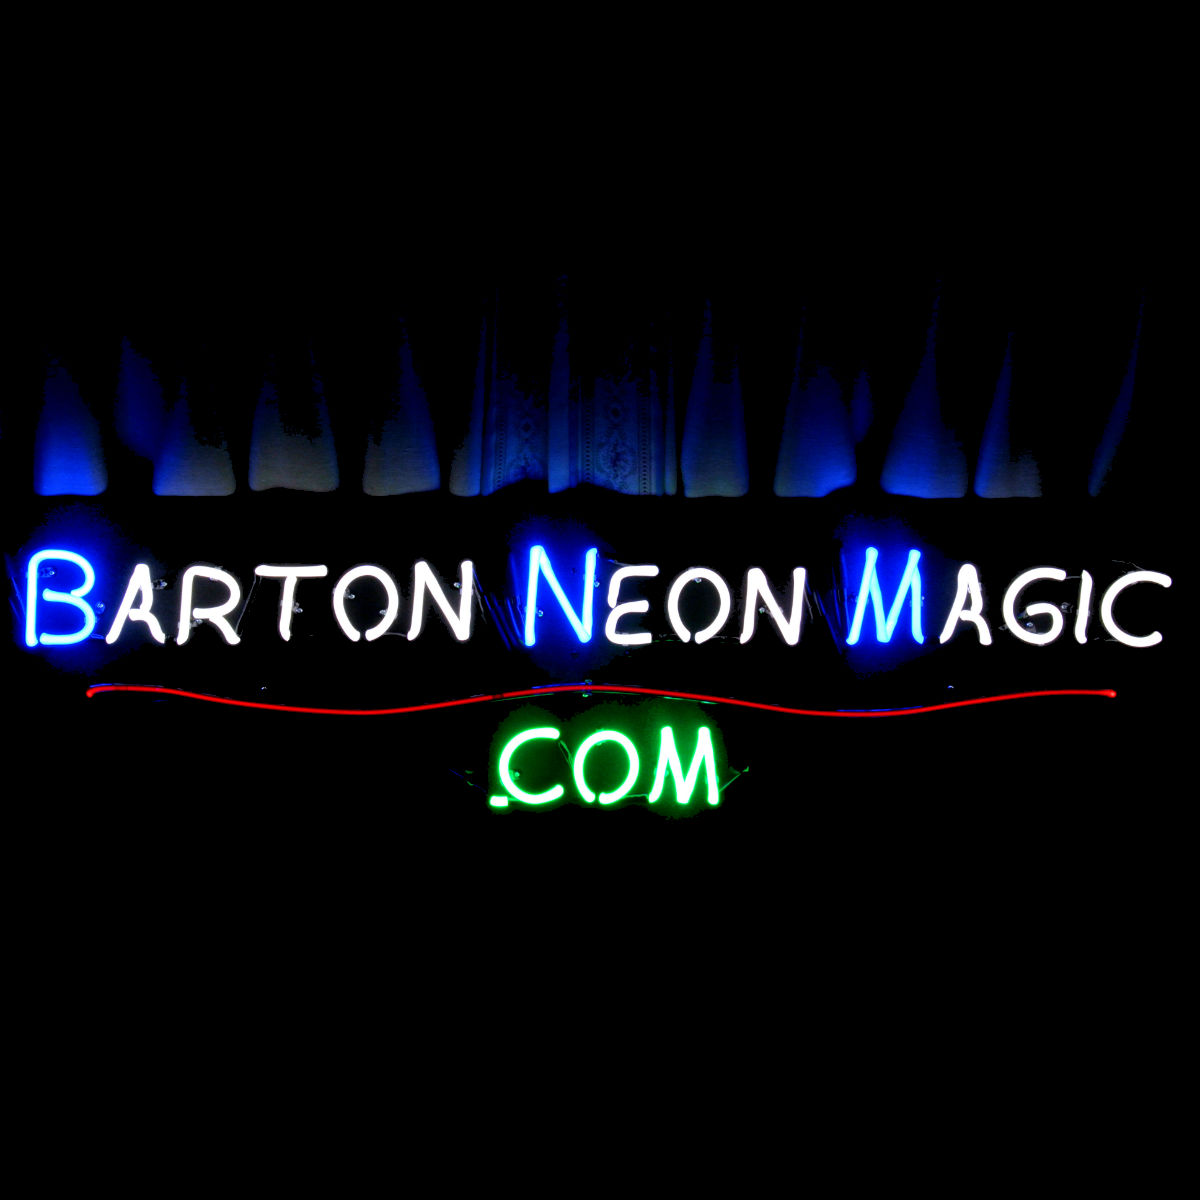 Custom hand-blown Automotive Neon Signs by John Barton - BartonNeonMagic.com